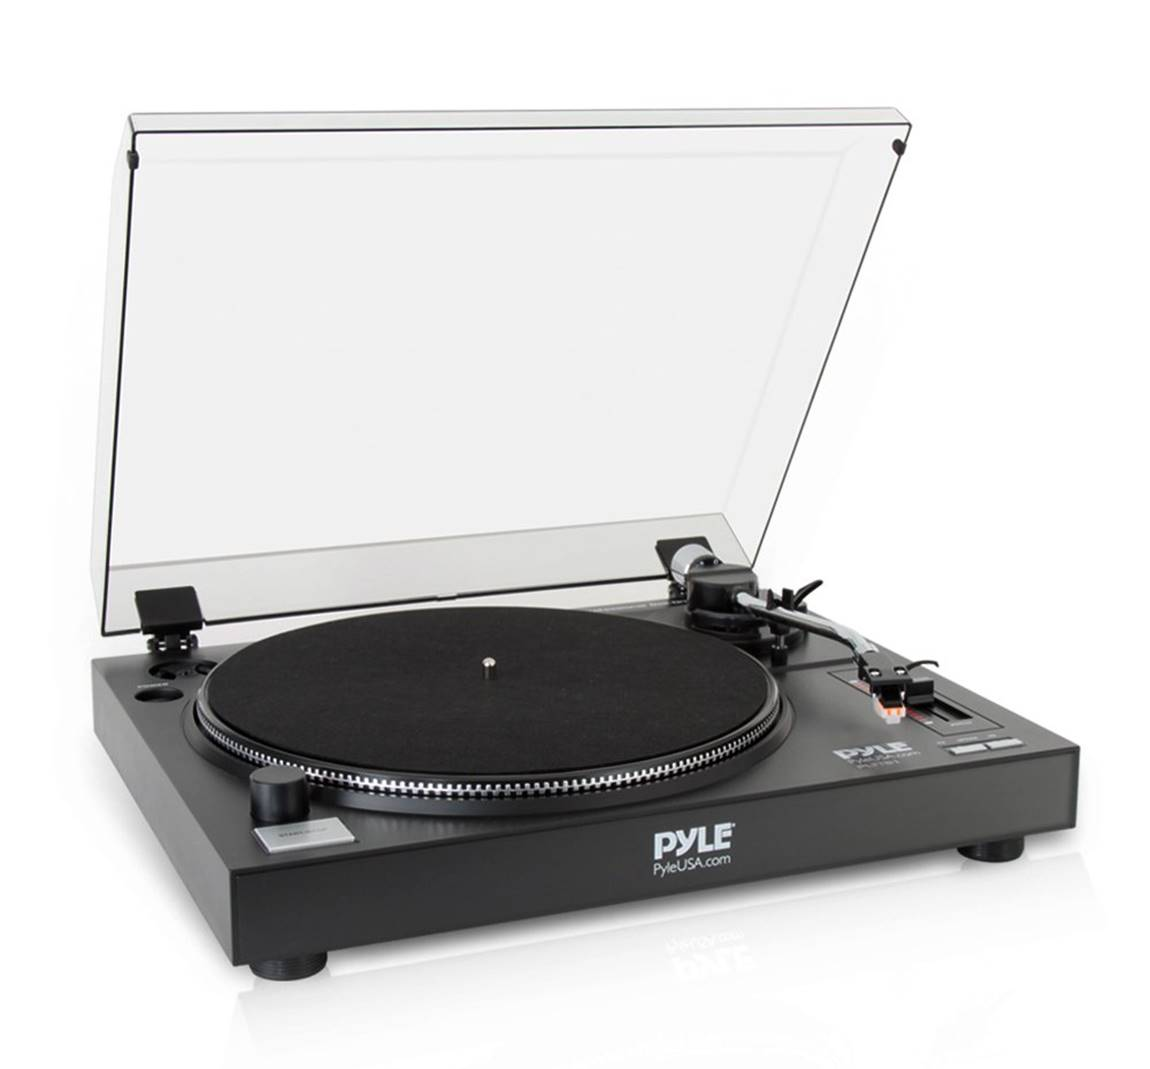 Pyle PLTTB1 Vinyl Record Player